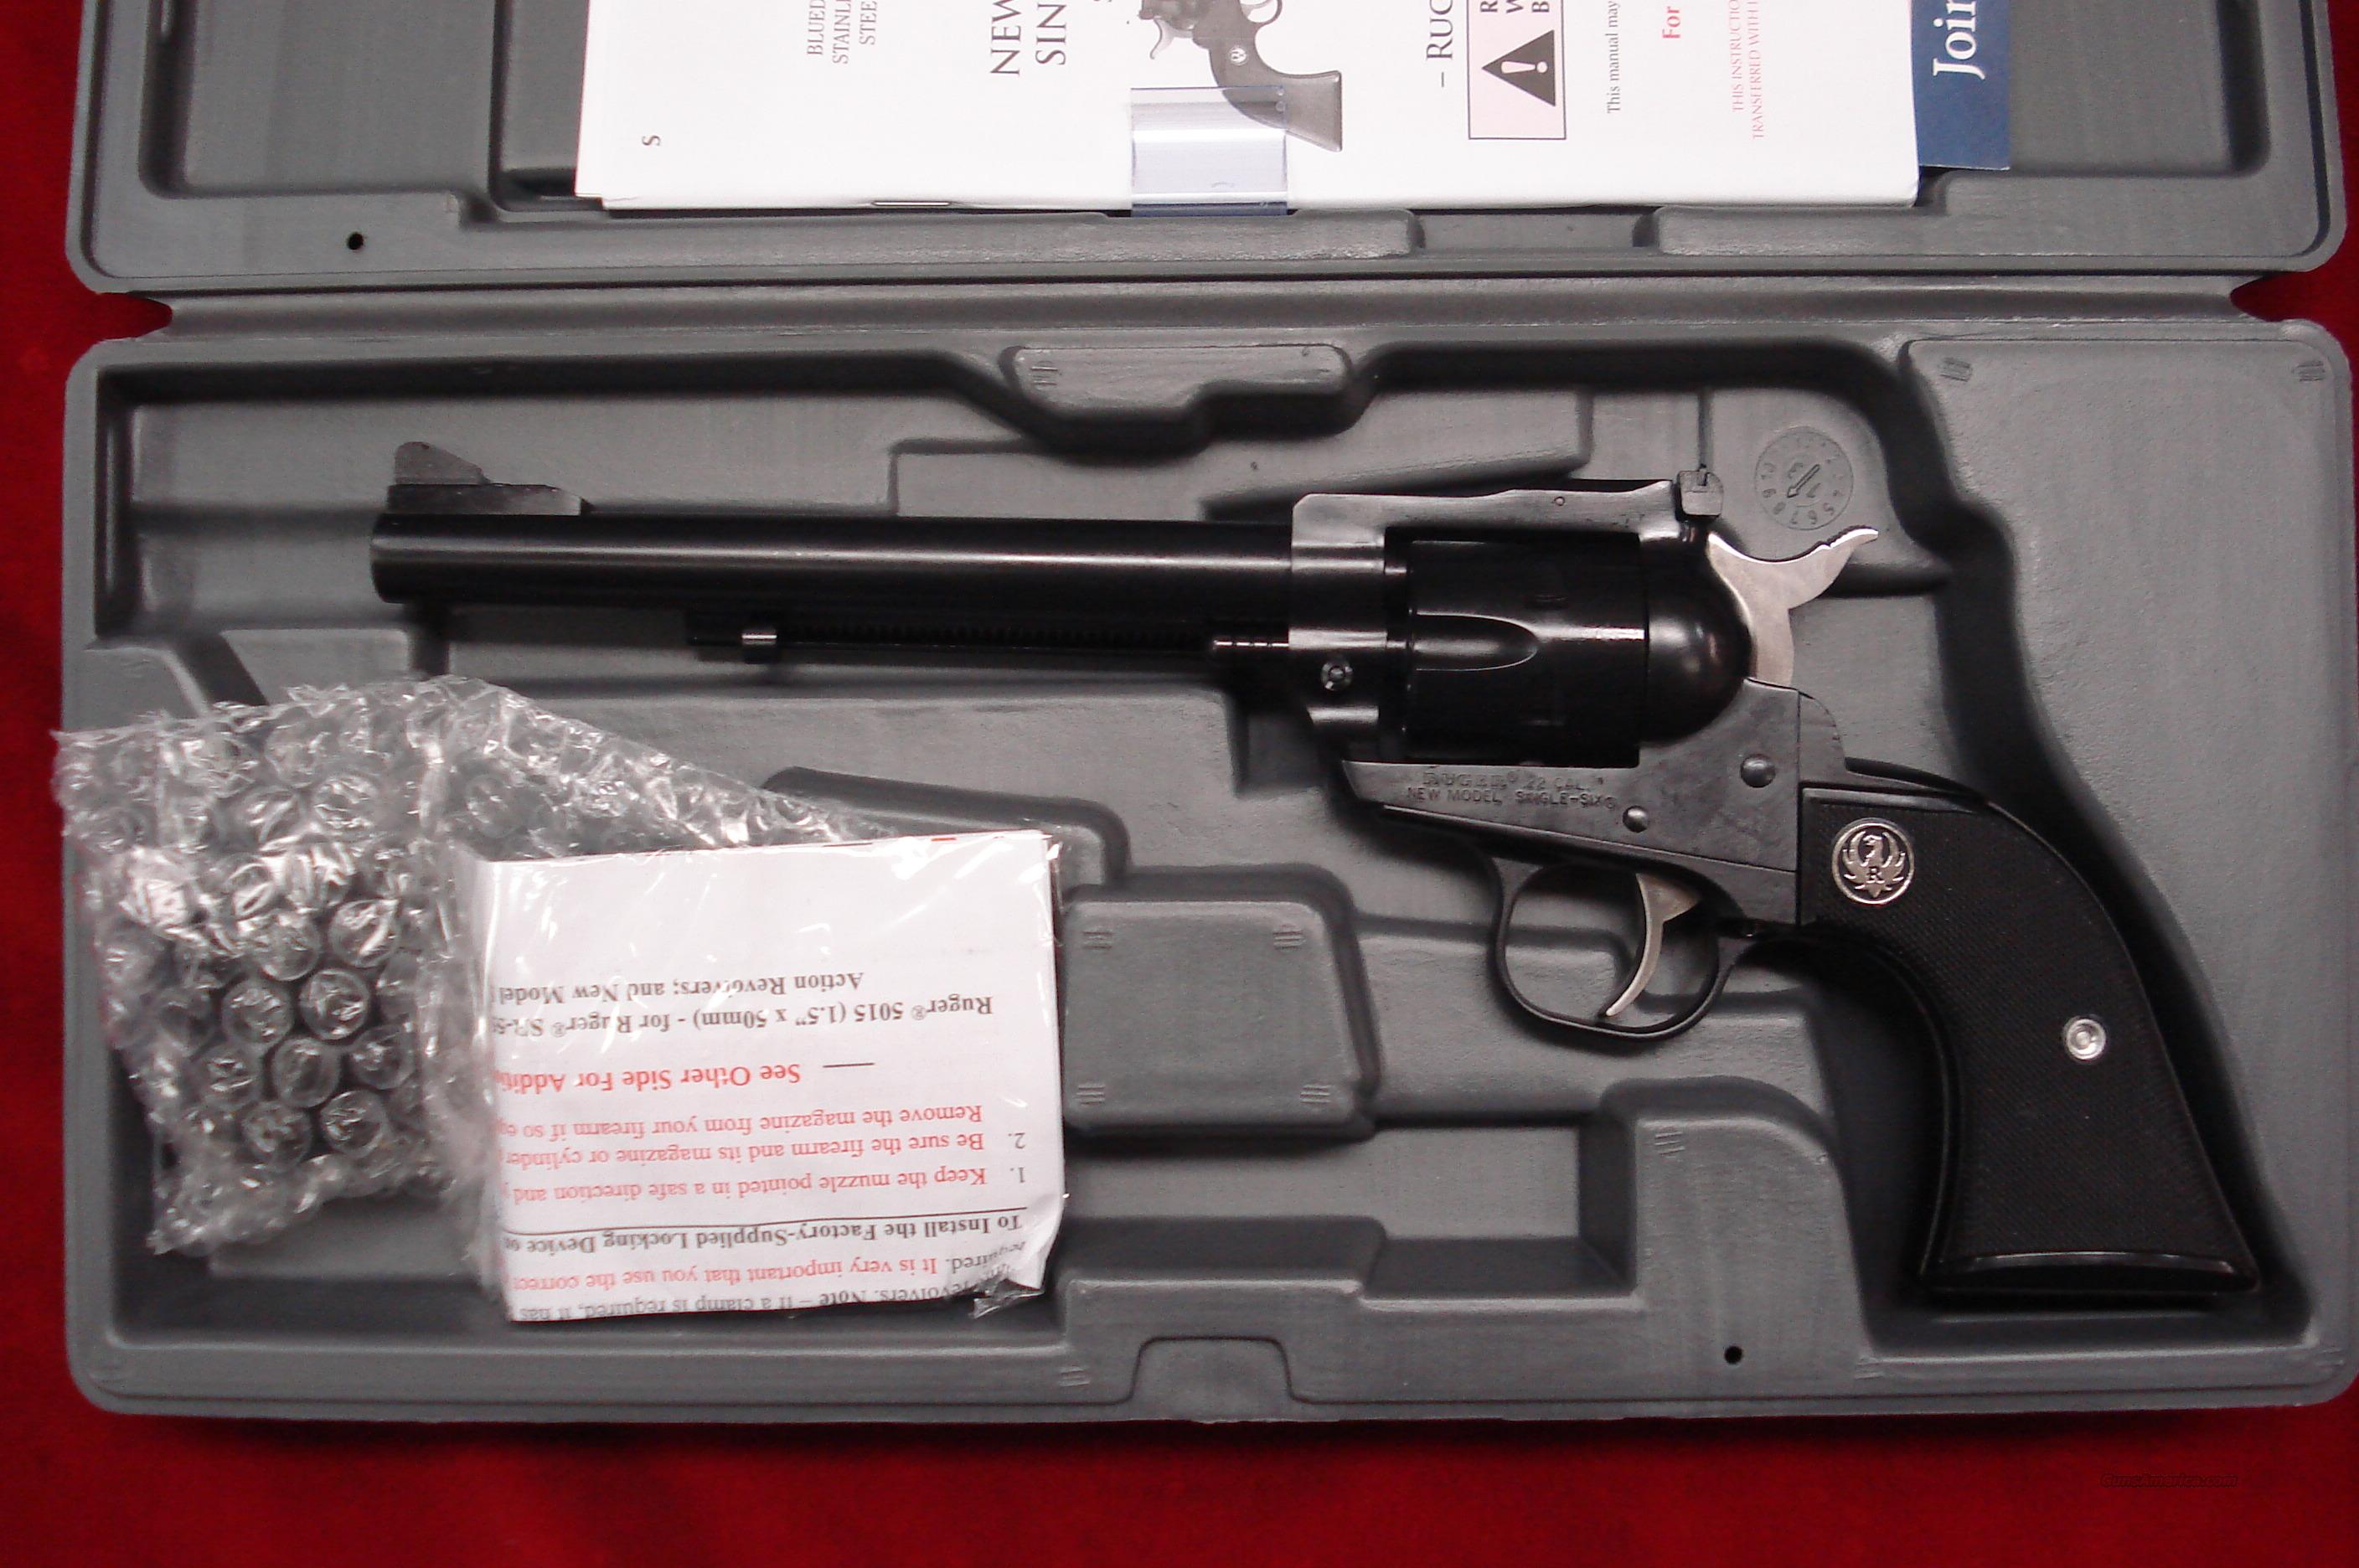 """RUGER SINGLE SIX CONVERTIBLE 22LR/ 22MAG BLUED 6.5"""" NEW (NR-6)  (00622)   Guns > Pistols > Ruger Single Action Revolvers > Single Six Type"""